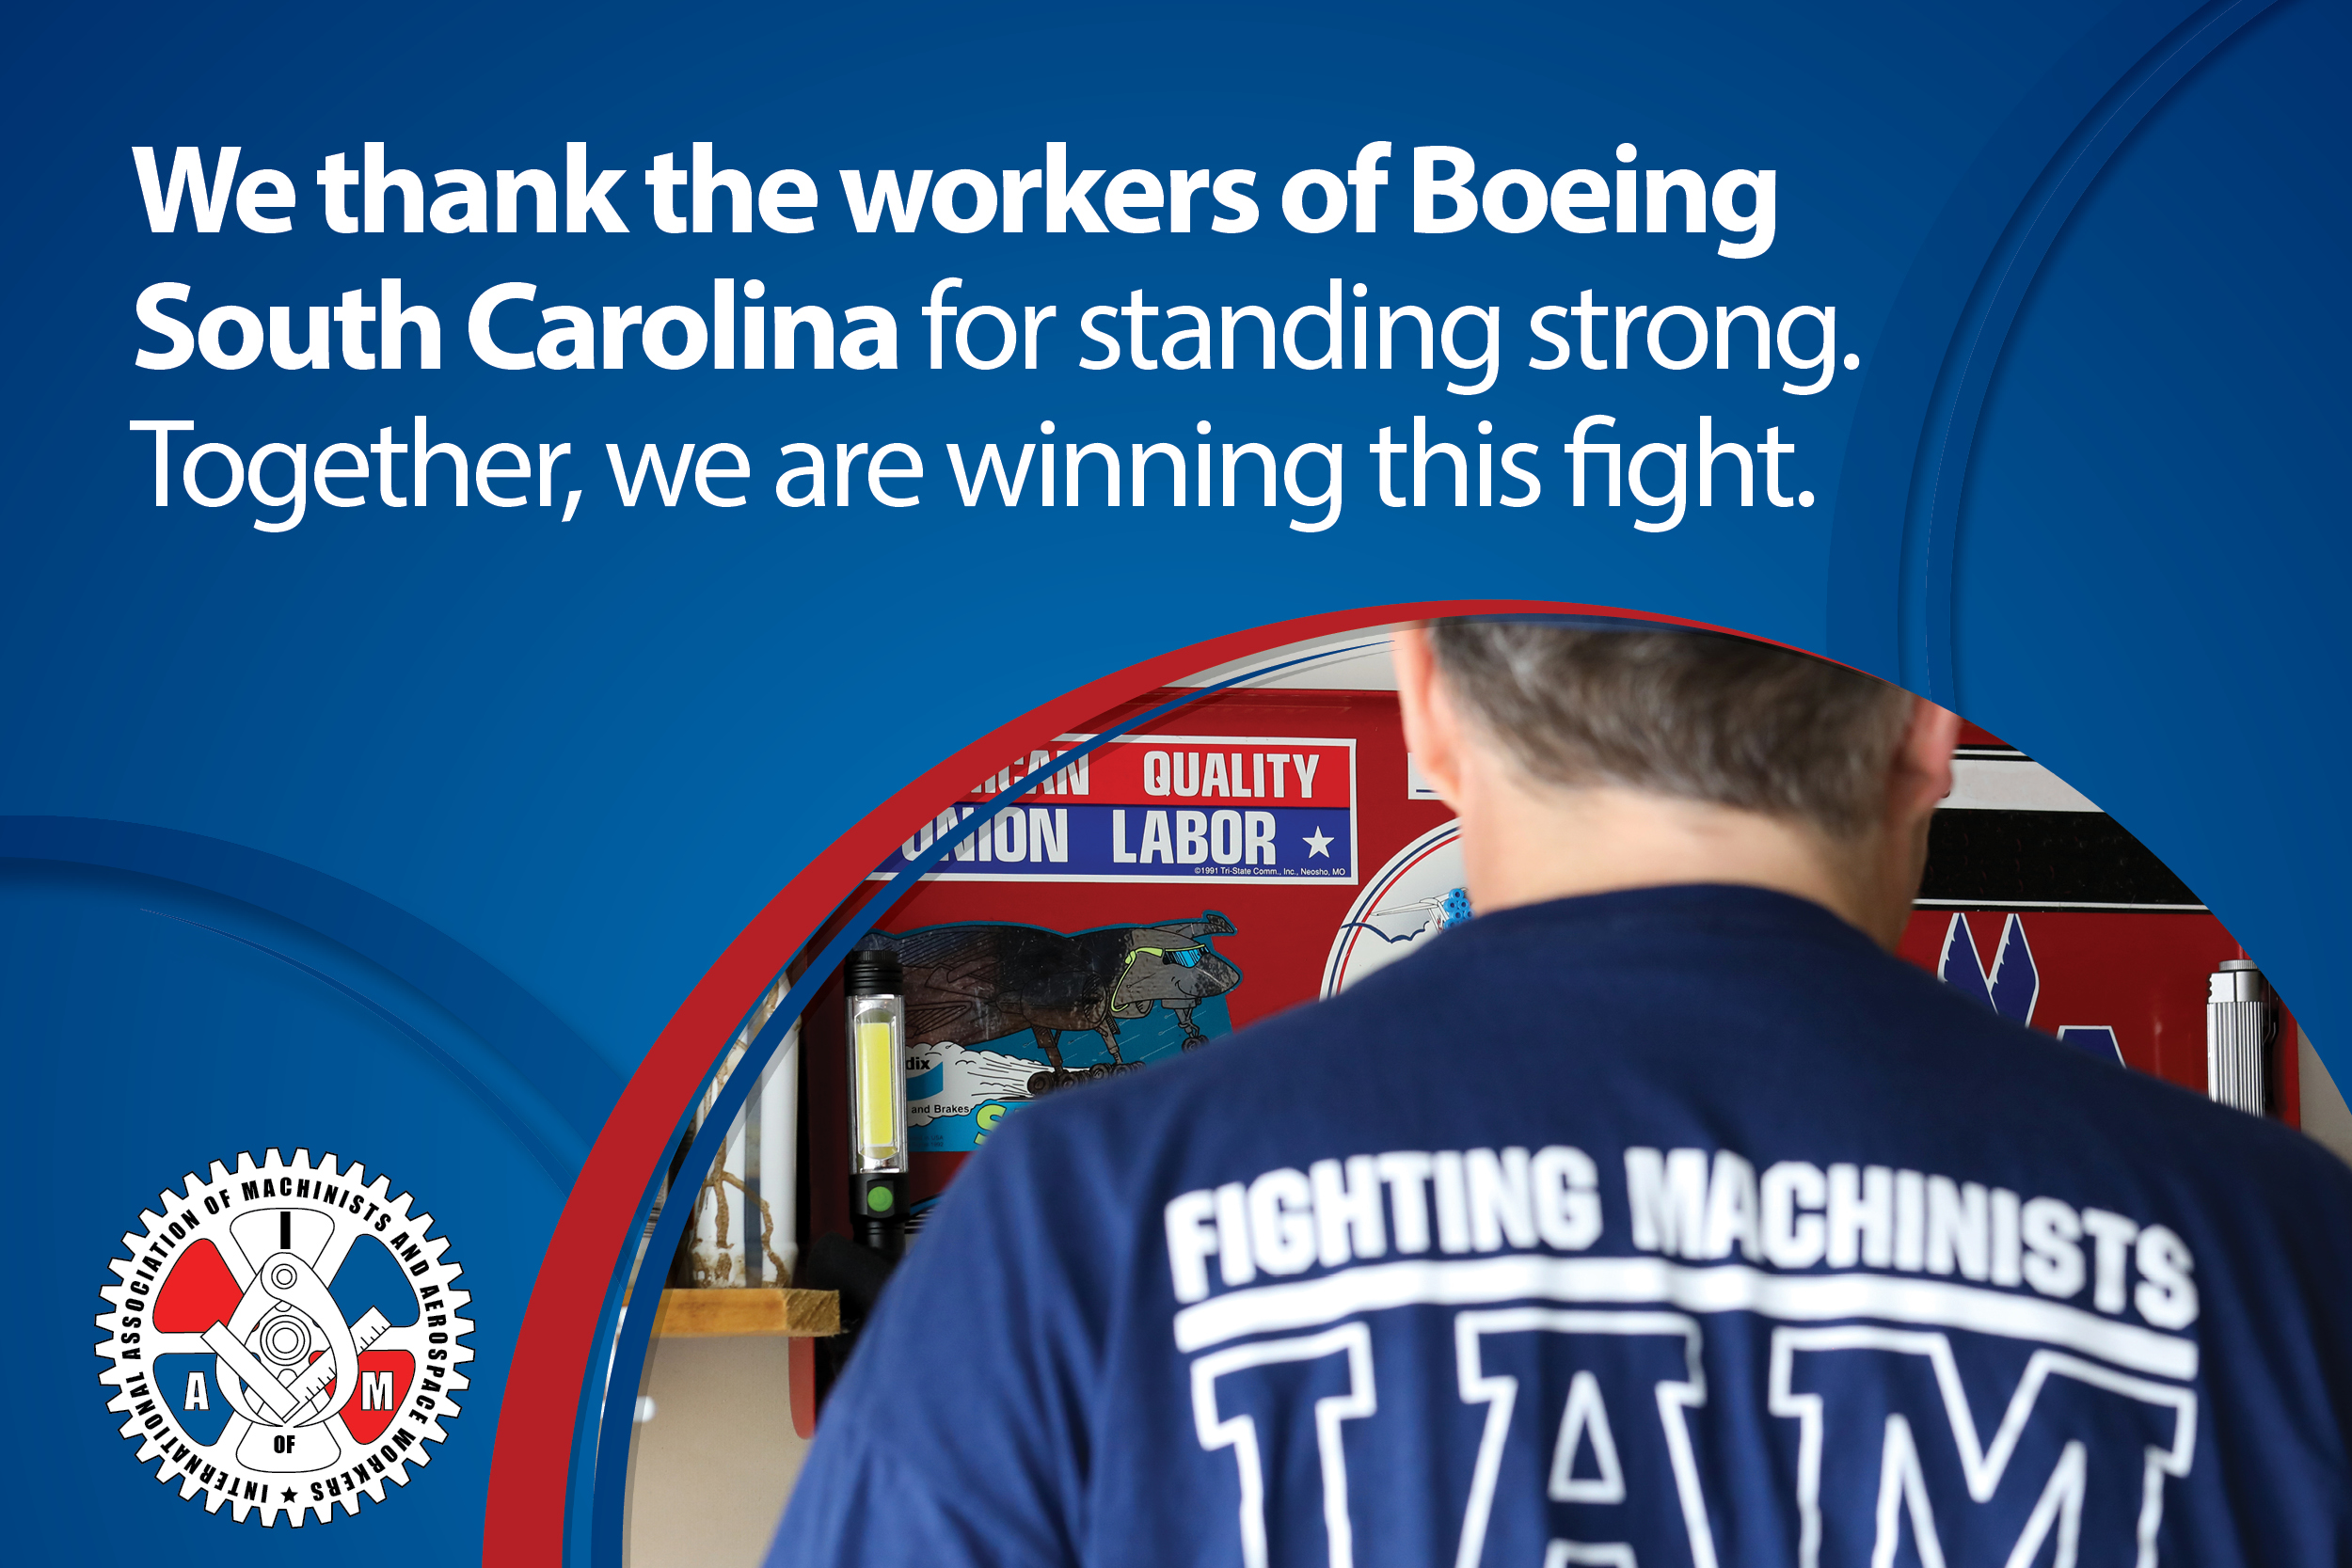 Unjustly Fired Machinists Union Members Win Critical Legal Battle at Boeing South Carolina